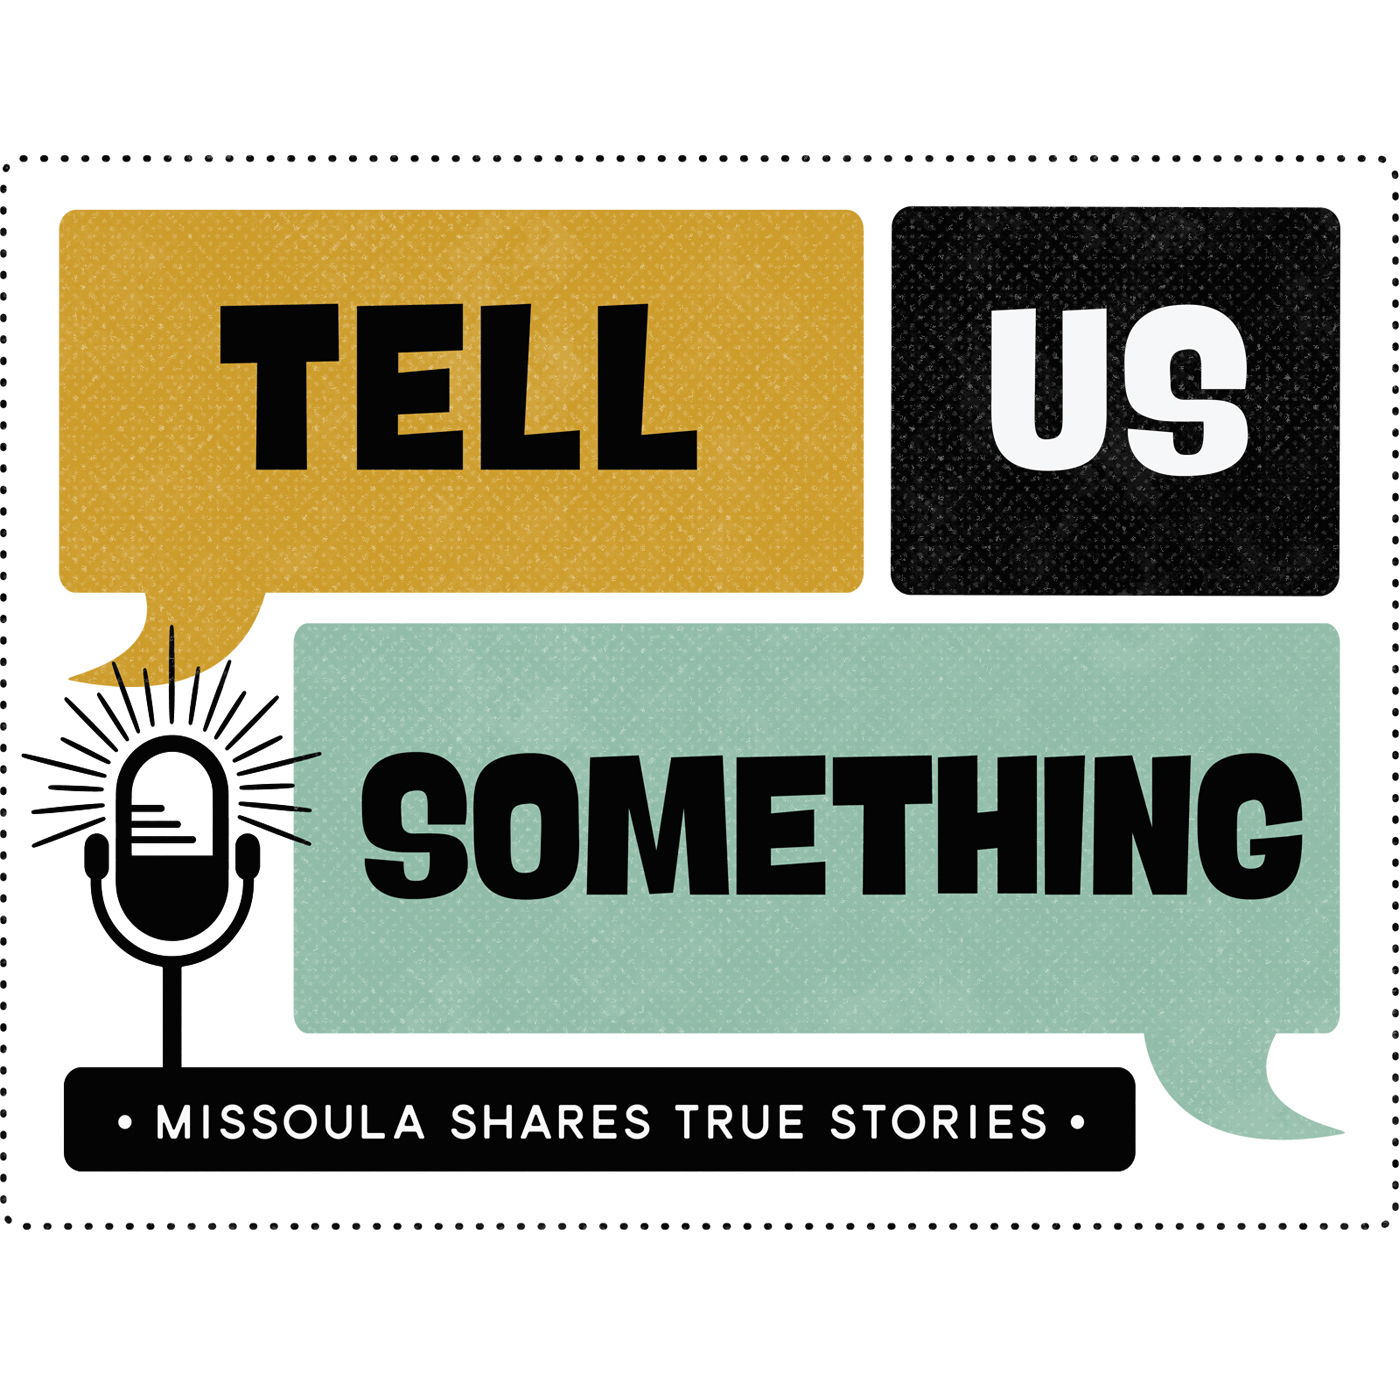 Listen to Stories - Tell Us Something